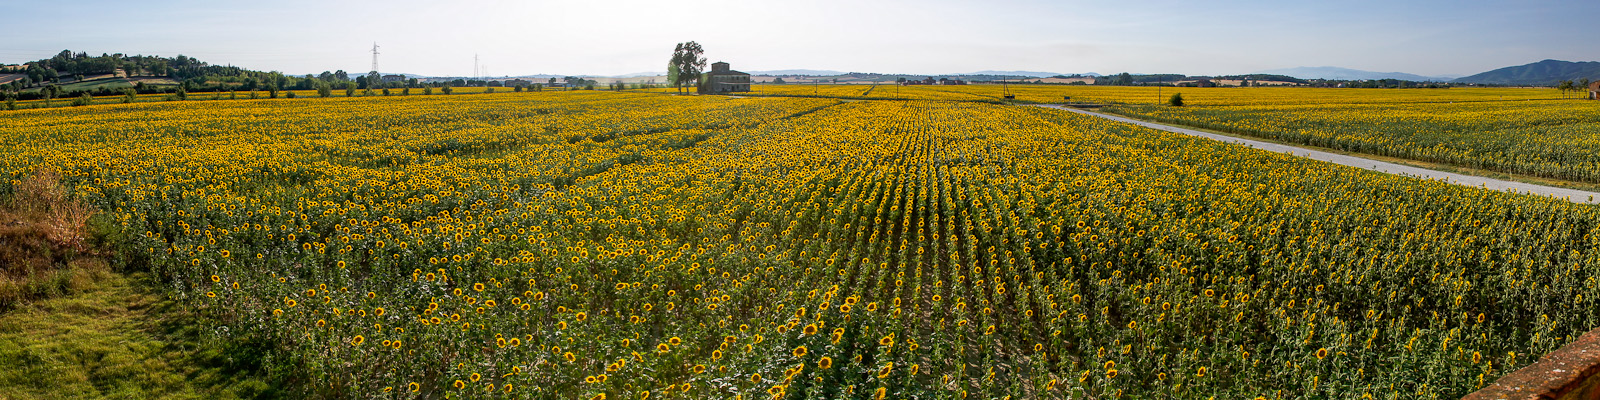 The valley is blanketed with sunflowers during the early summer